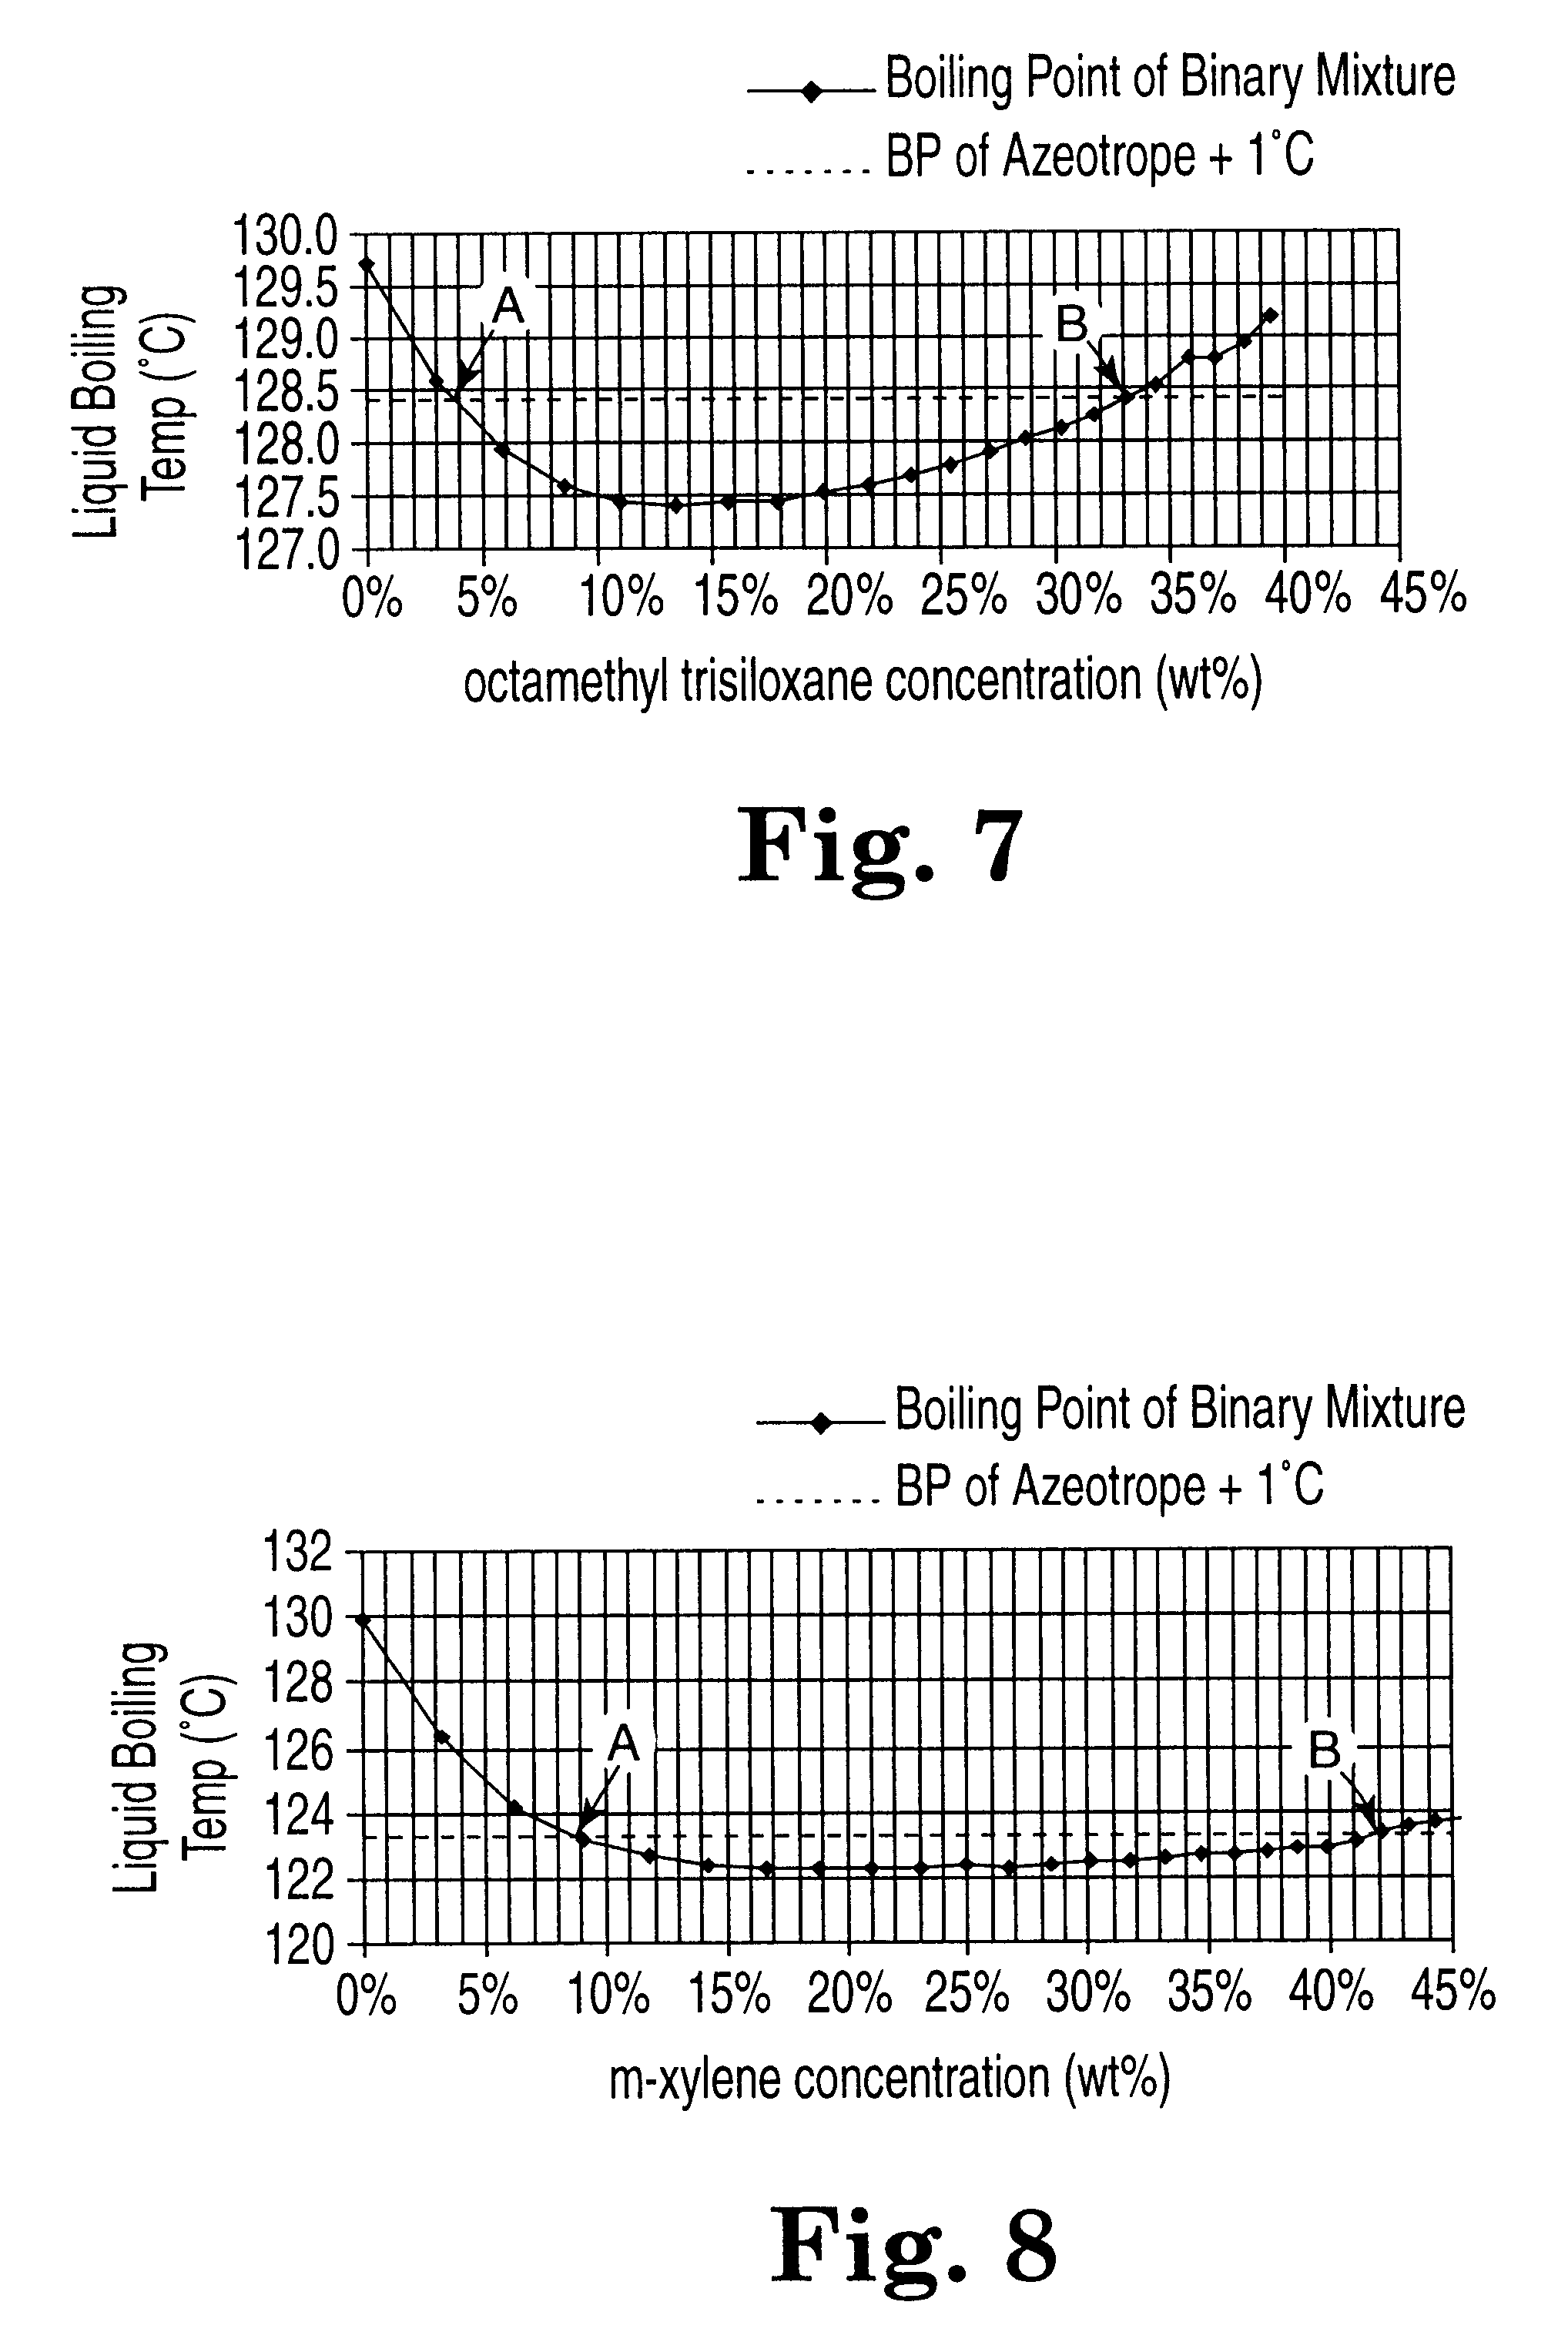 Brevet US6417153 - Azeotrope-like compositions and their use